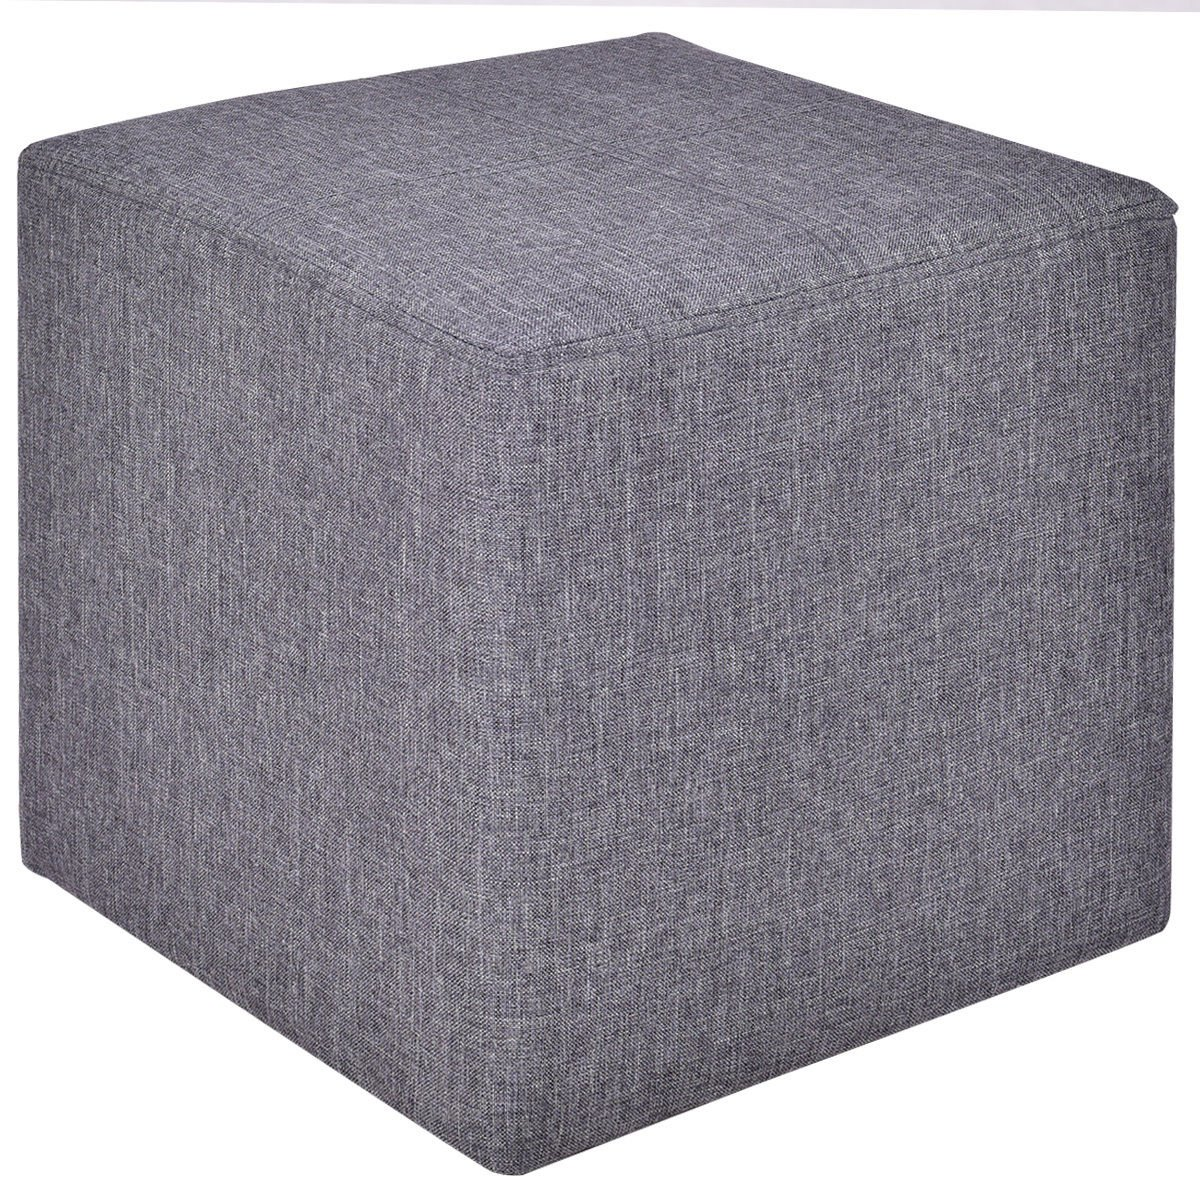 Adumly Linen Ottoman Square Foot Stool Footstools Seat Wood Frame Footrest by Adumly